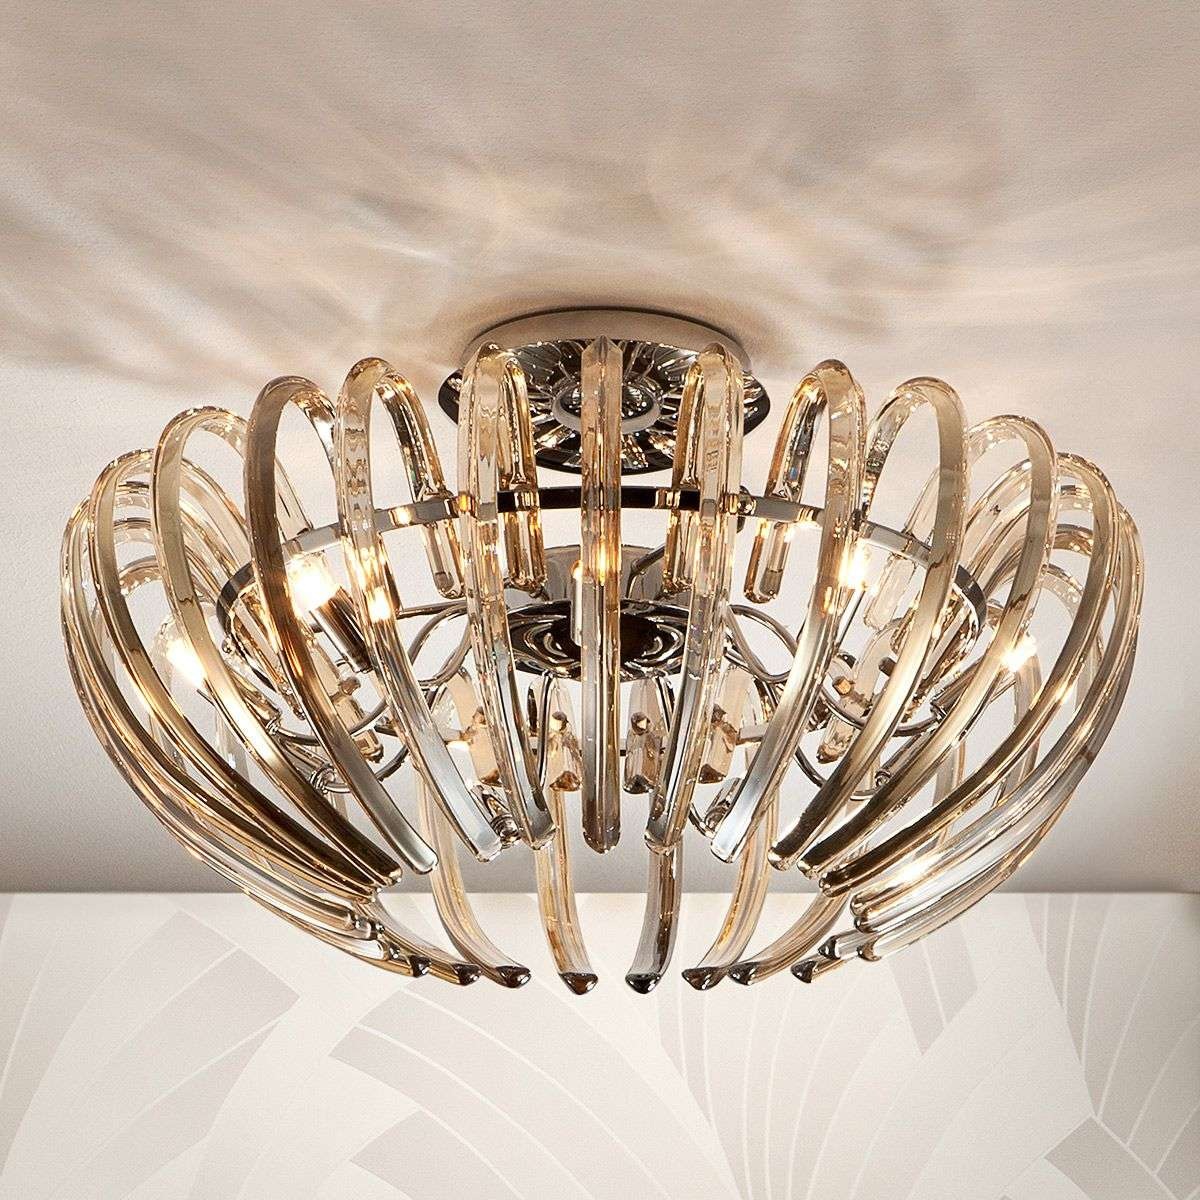 exquisite lighting. exquisite crystal ceiling light ariadna champagne858217431 lighting e